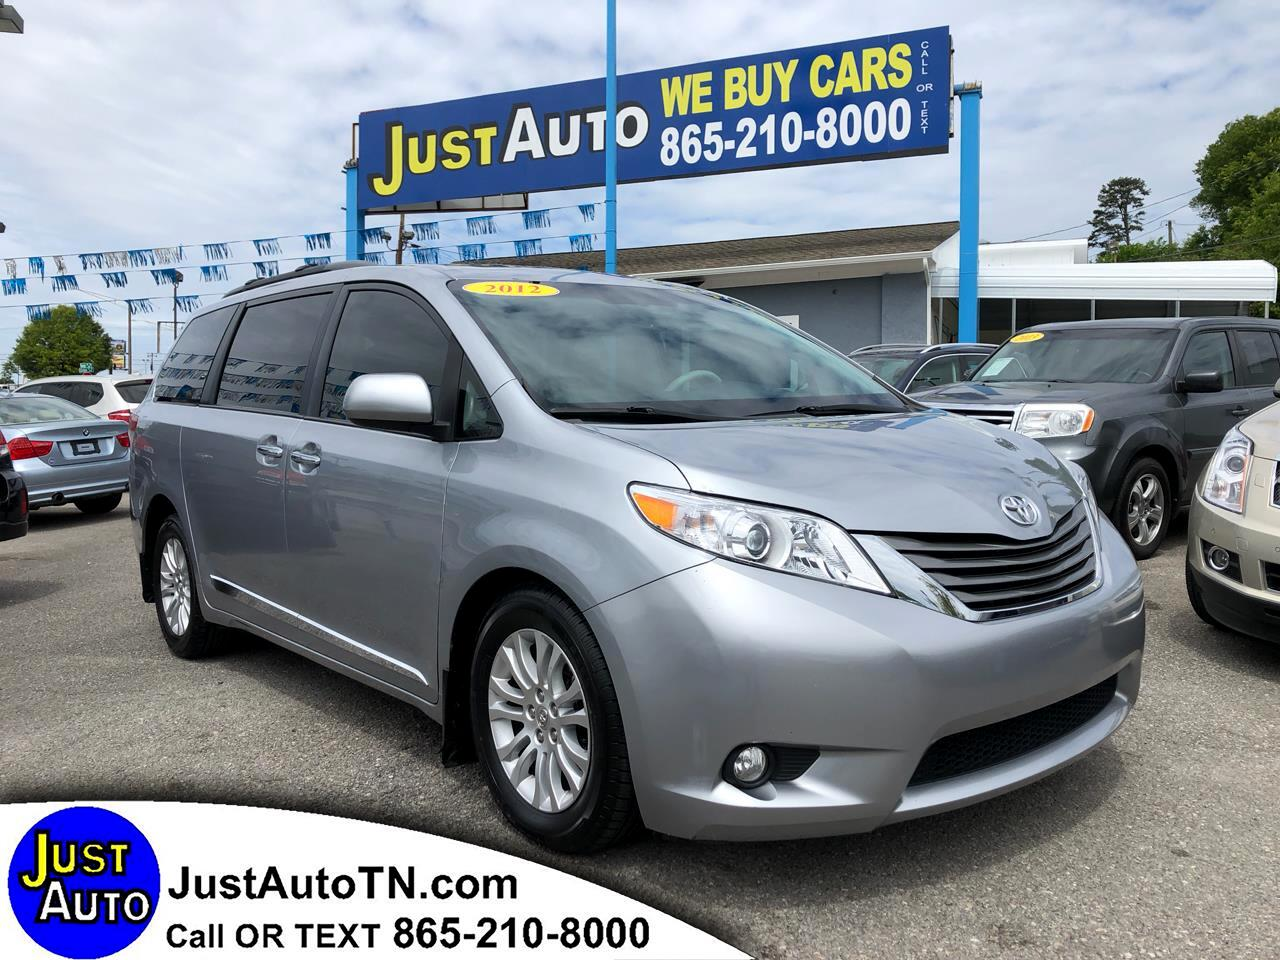 Toyota Sienna 5dr 7-Pass Van V6 XLE AAS FWD (Natl) 2012